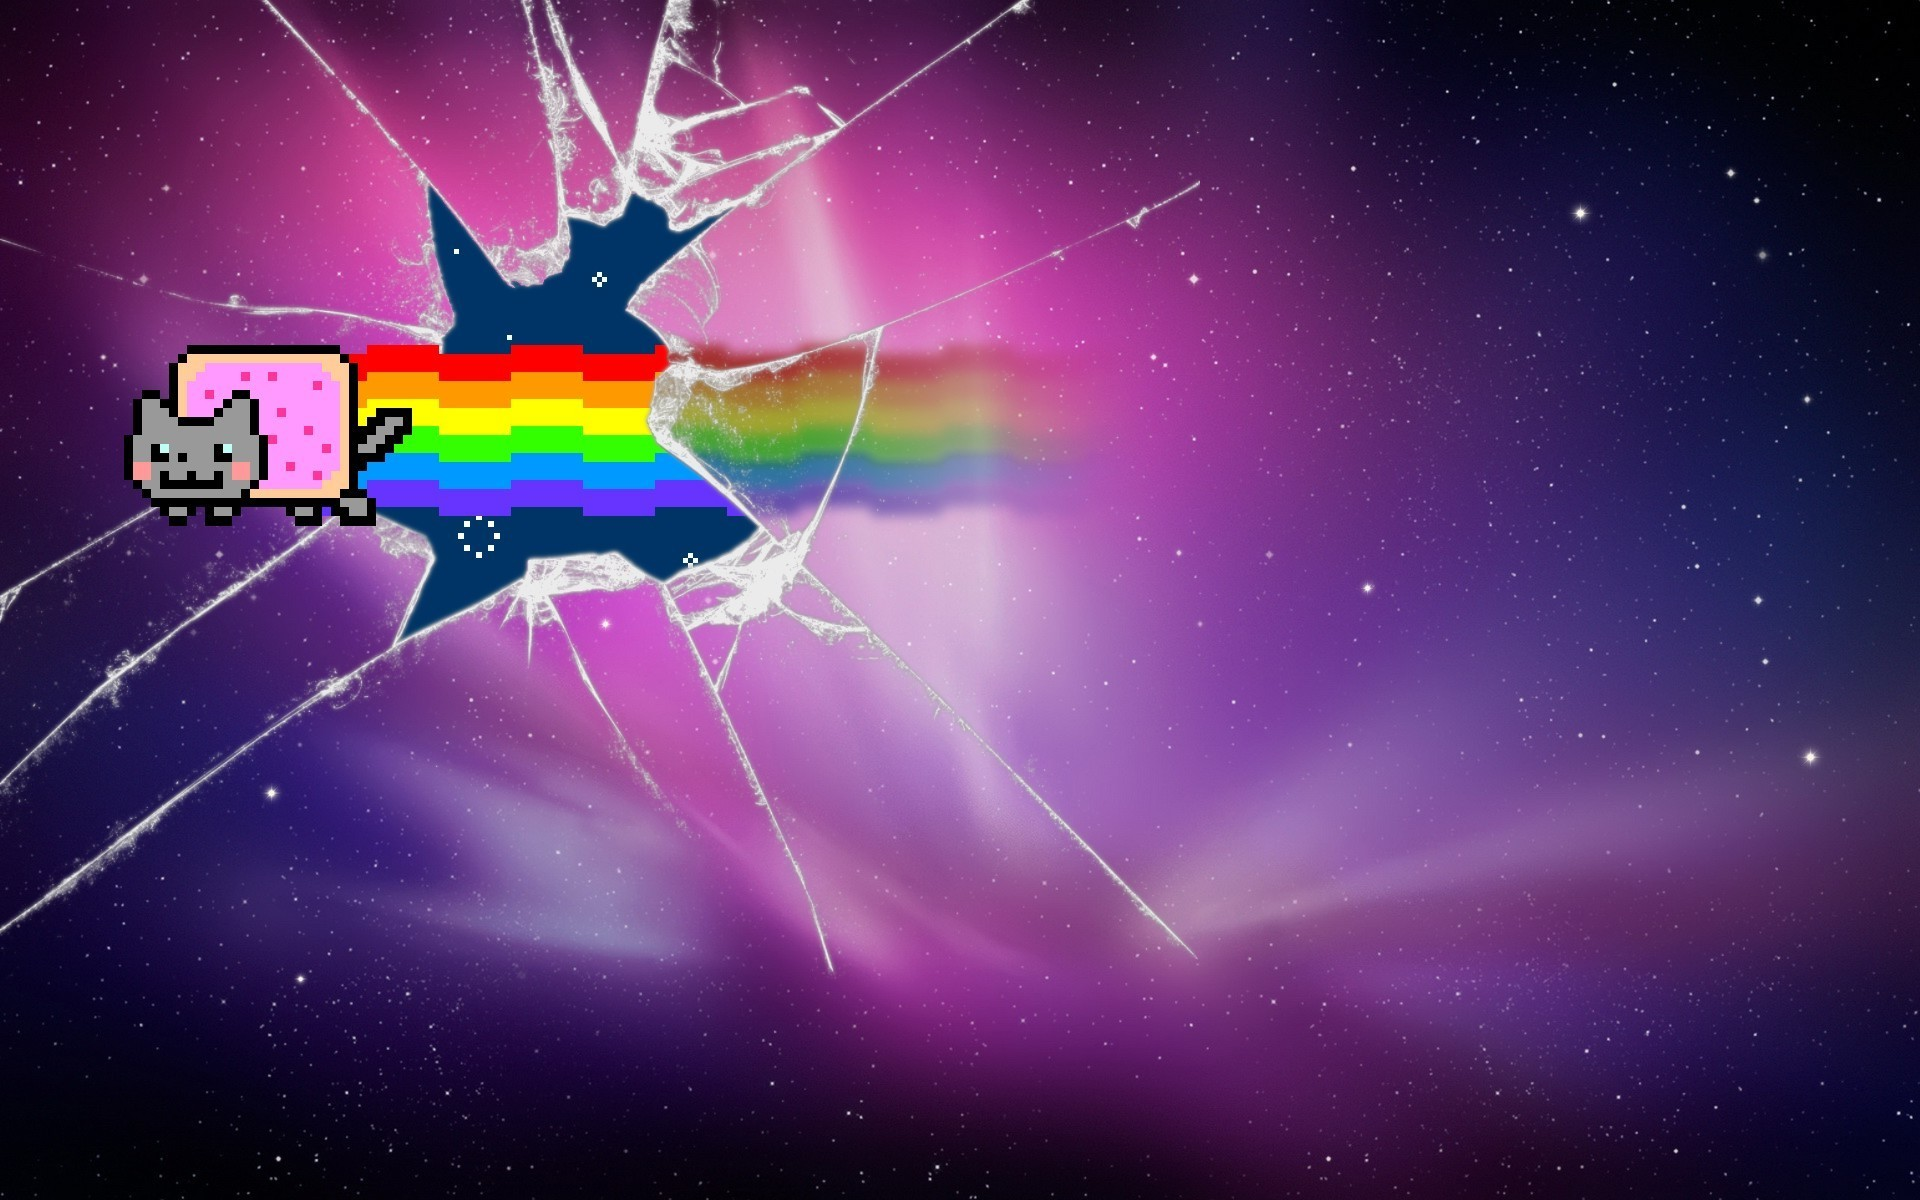 3d Moving Galaxy Wallpaper Broken Glass Backgrounds 183 ①